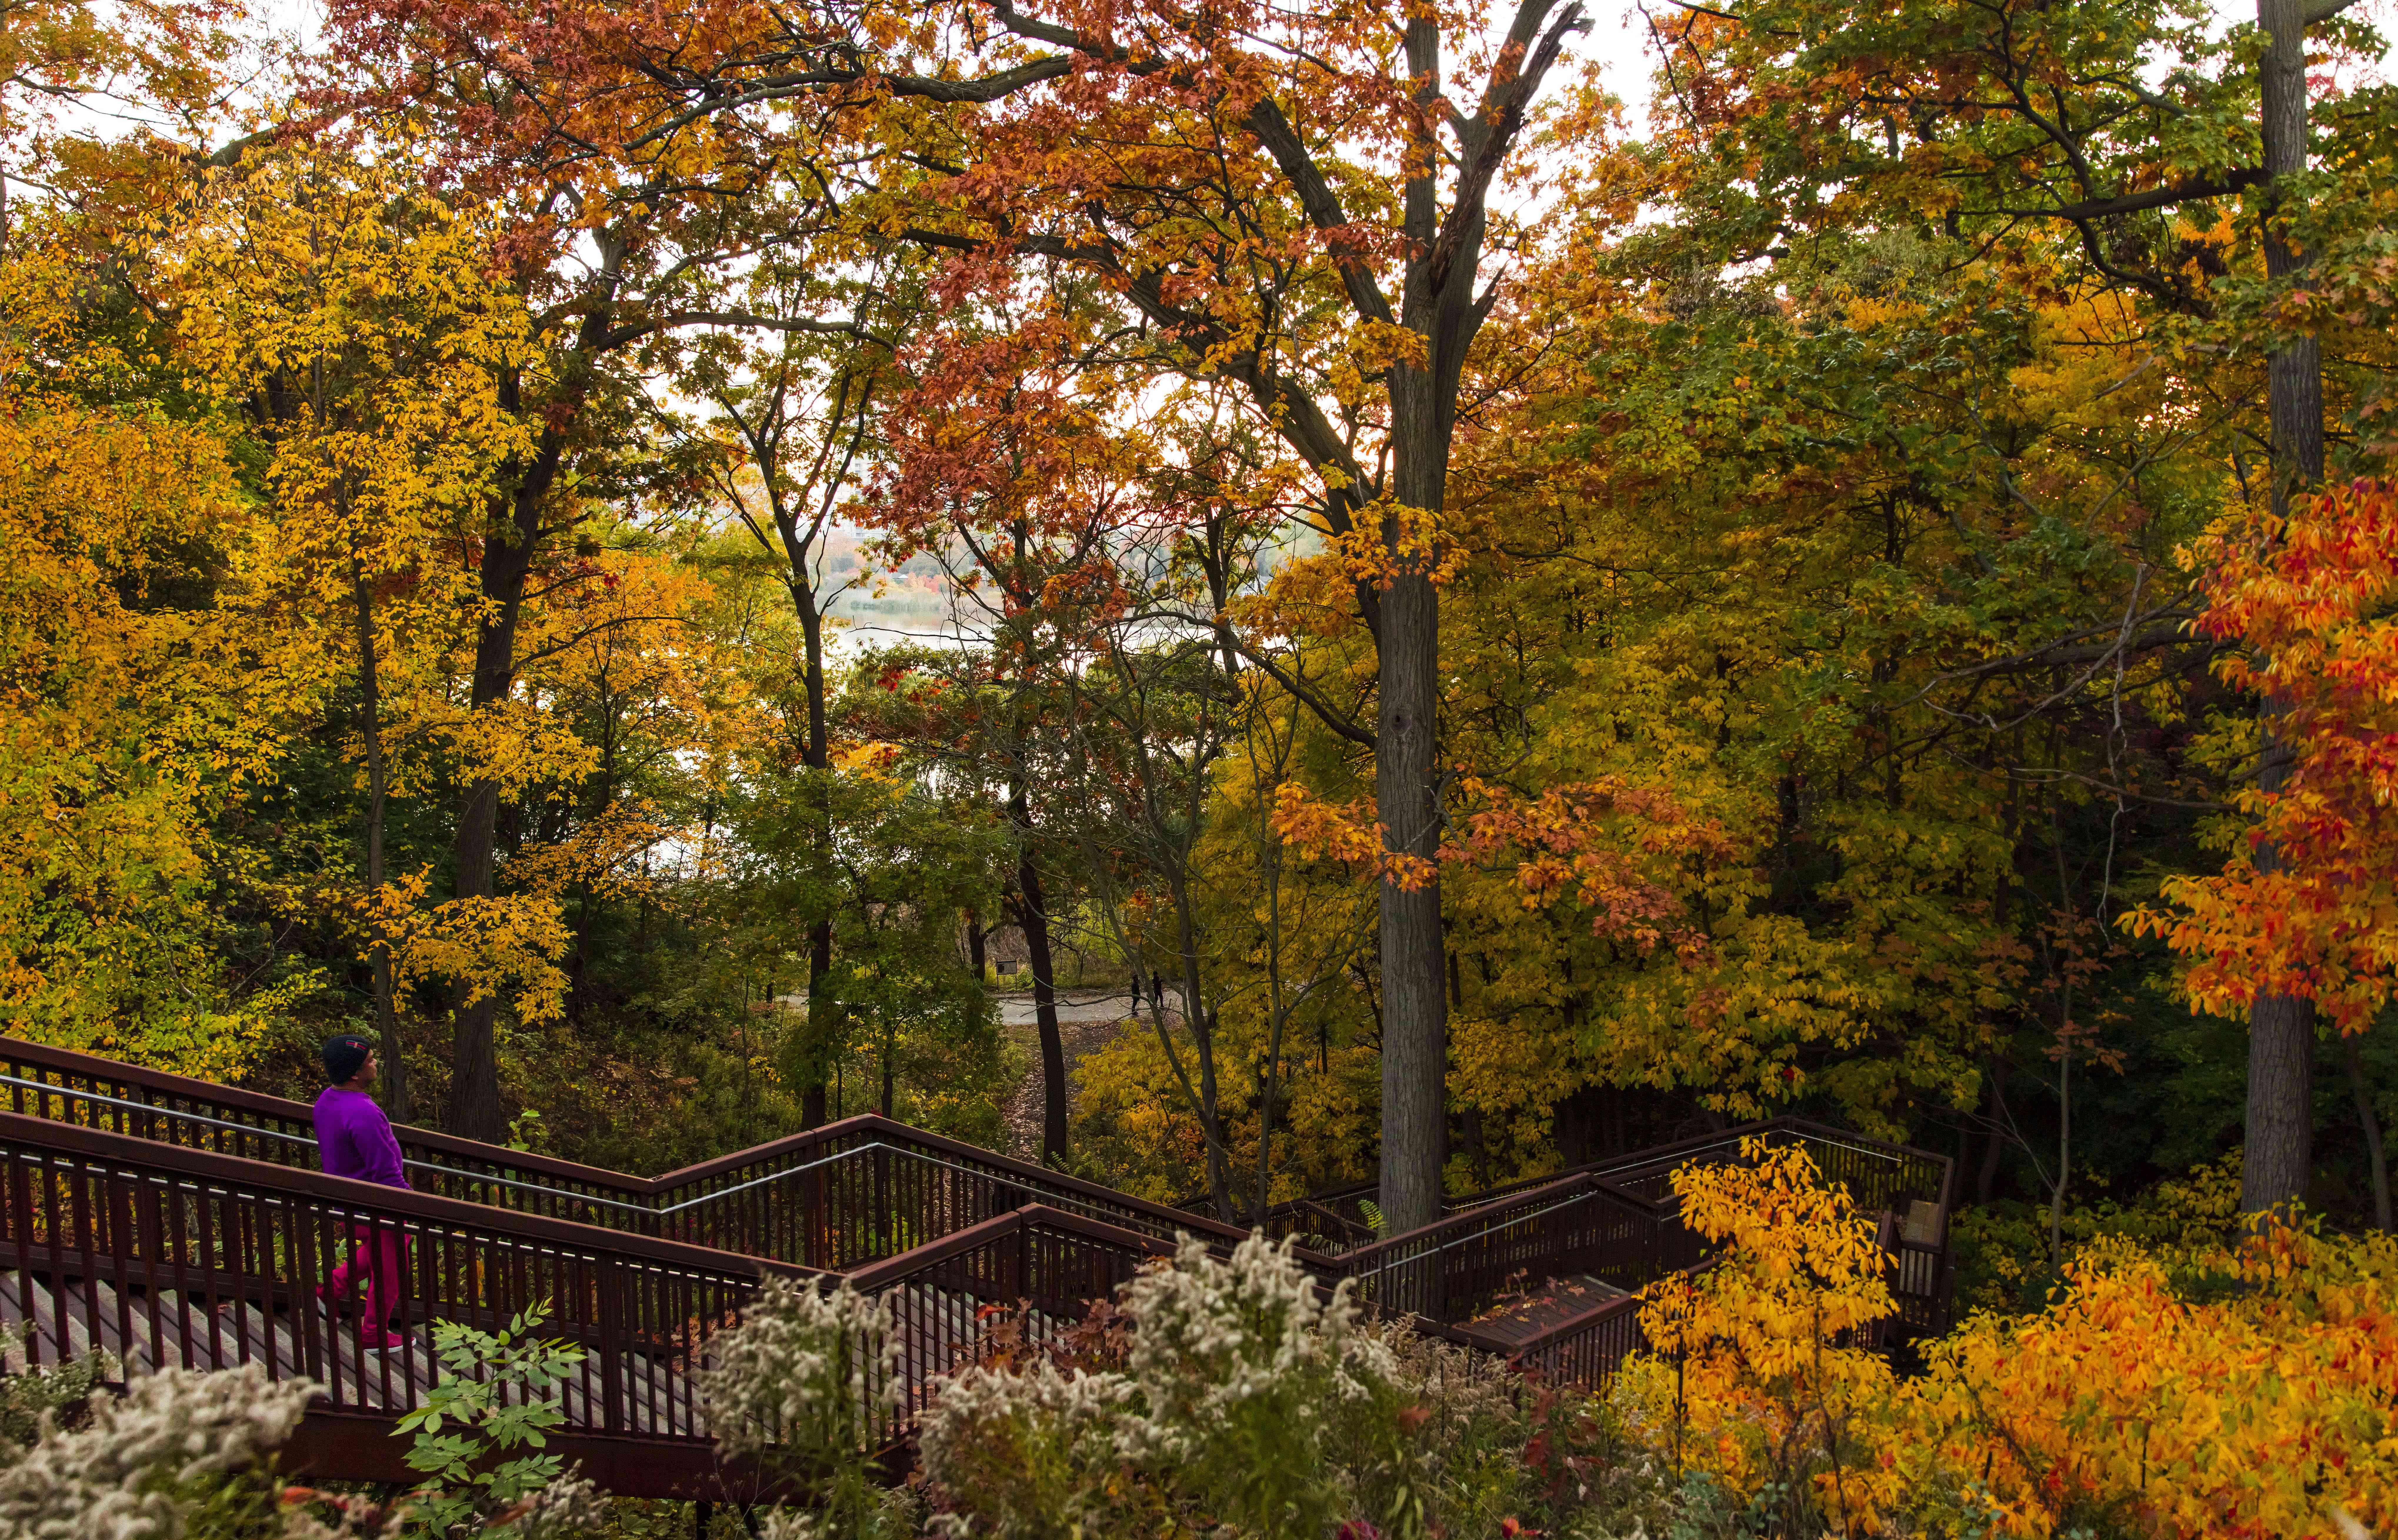 Fall foliage in High Park in Toronto